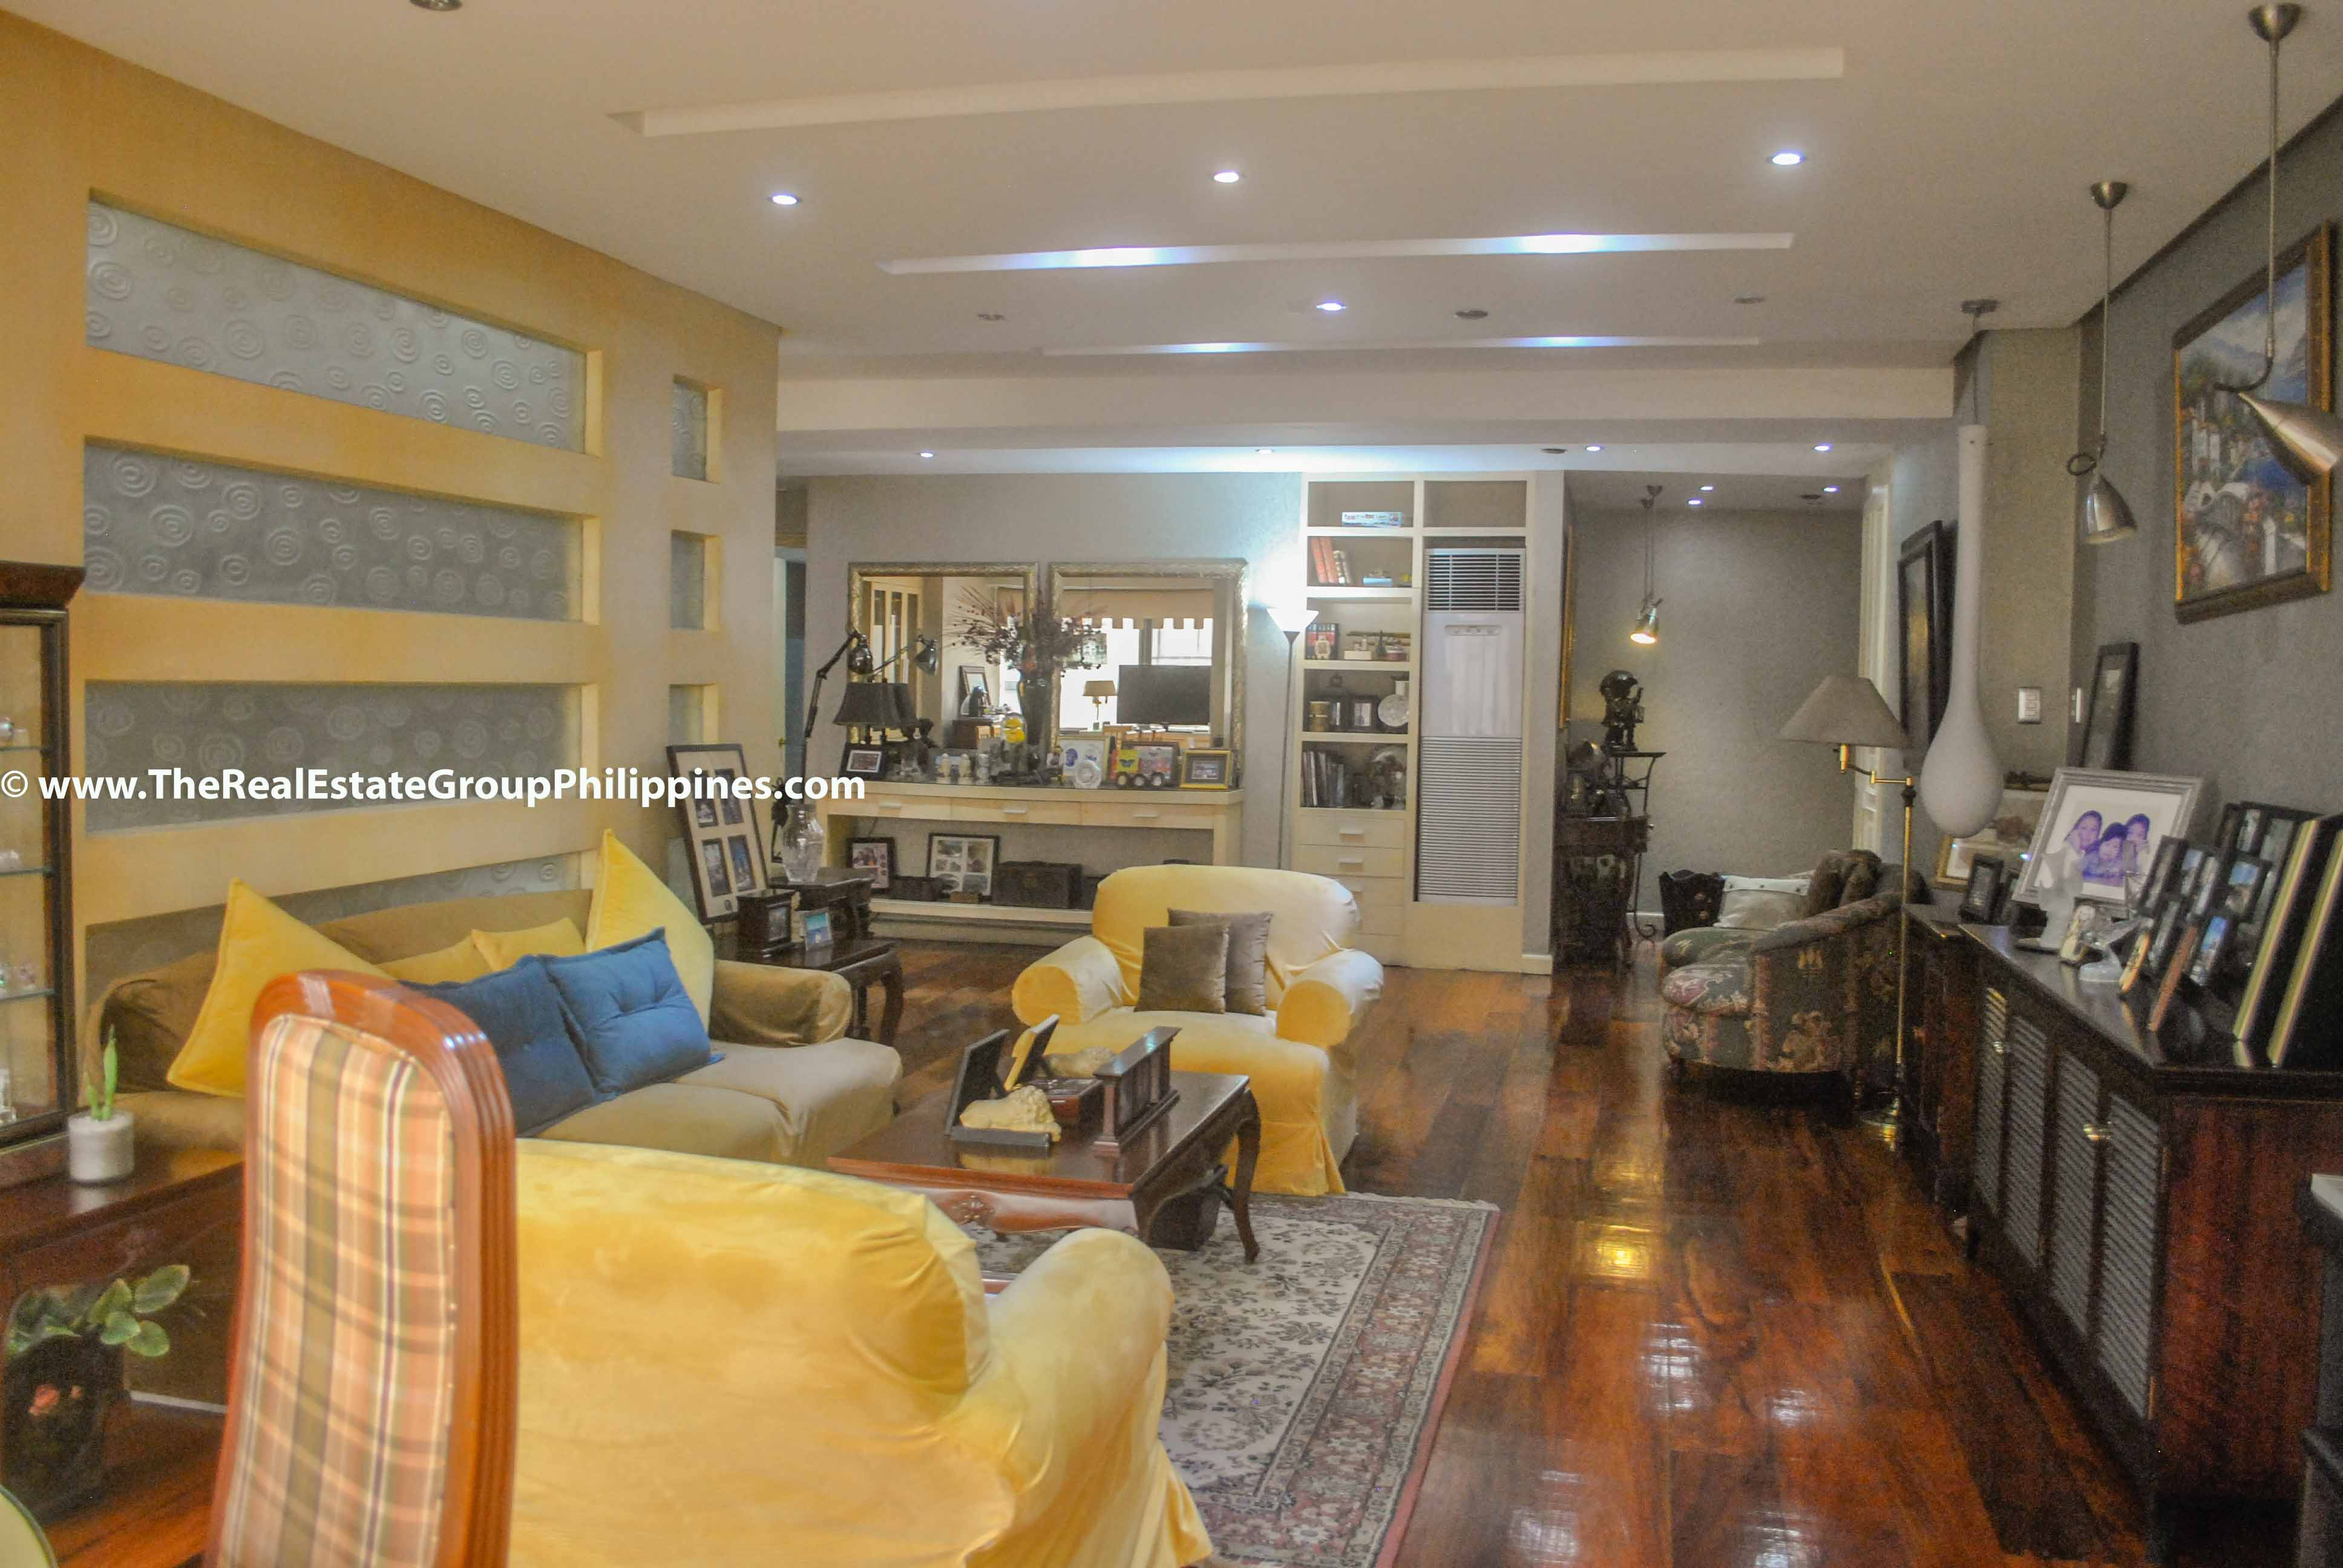 3BR For Sale Pacific Plaza Ayala 9B-11